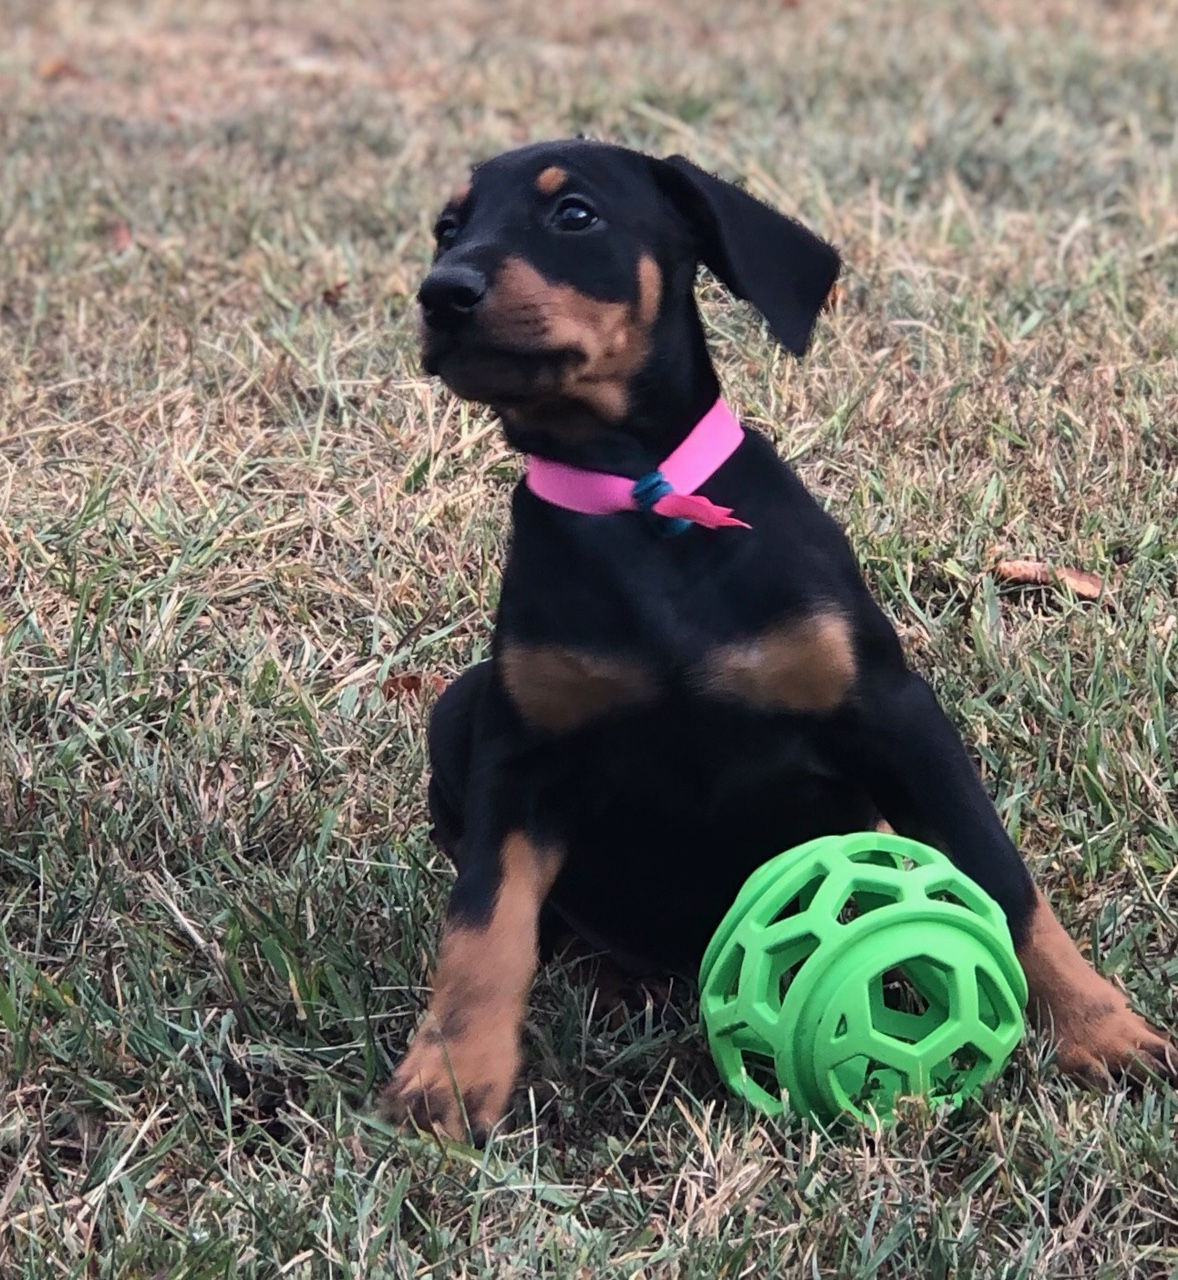 Glory was Zeva - formally Hoytts Bound for Glory born 7-21-19  Greta & Caspian pup ... Now a staff companion and future competitor  Family Dane & Noel Wester. - click her photo to learn more.